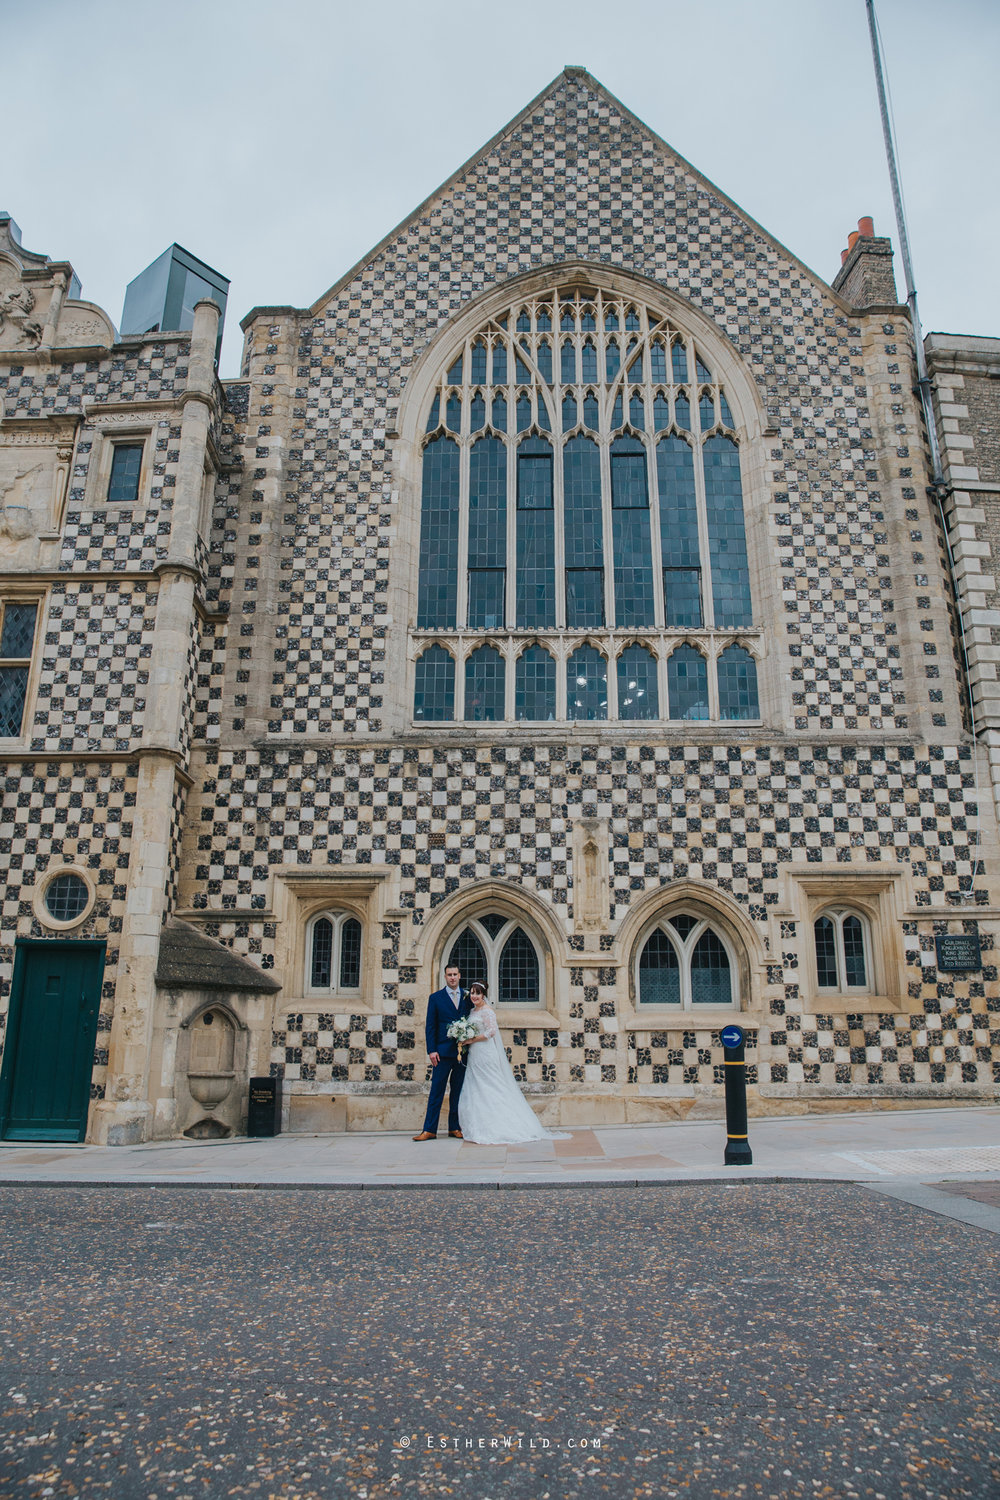 Kings_Lynn_Town_Hall_Wedding_Marry_In_Norfolk_Wedding_Esther_Wild_Photographer_IMG_5600.jpg